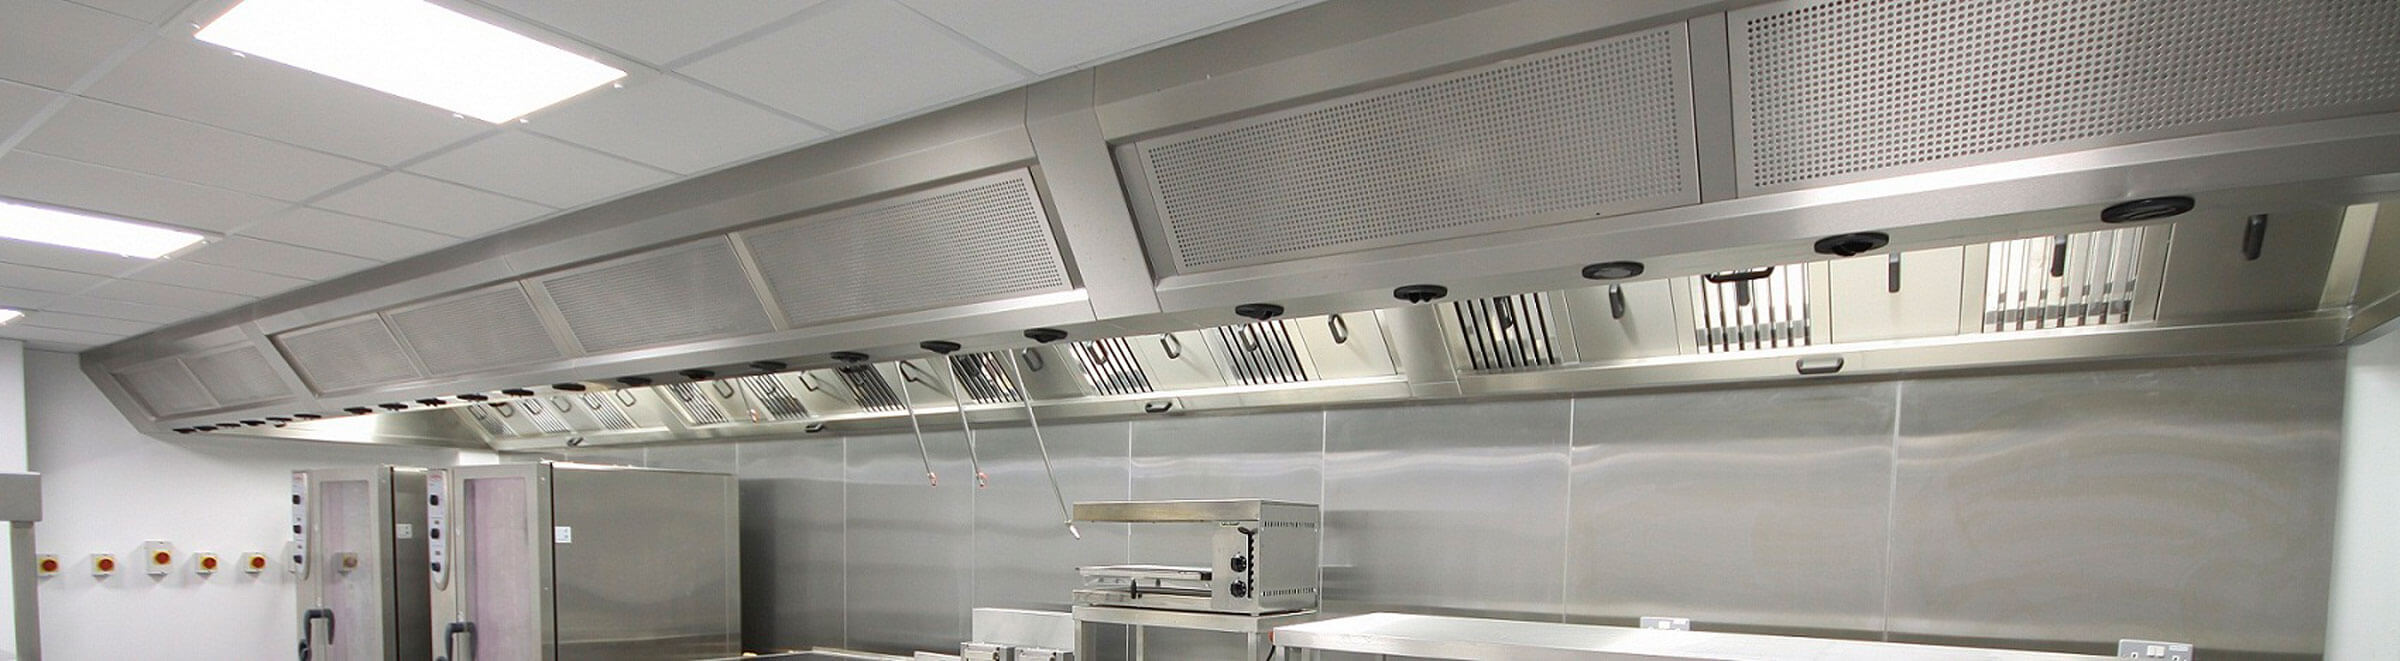 kitchen ventilation extraction dual system Catering Equipment